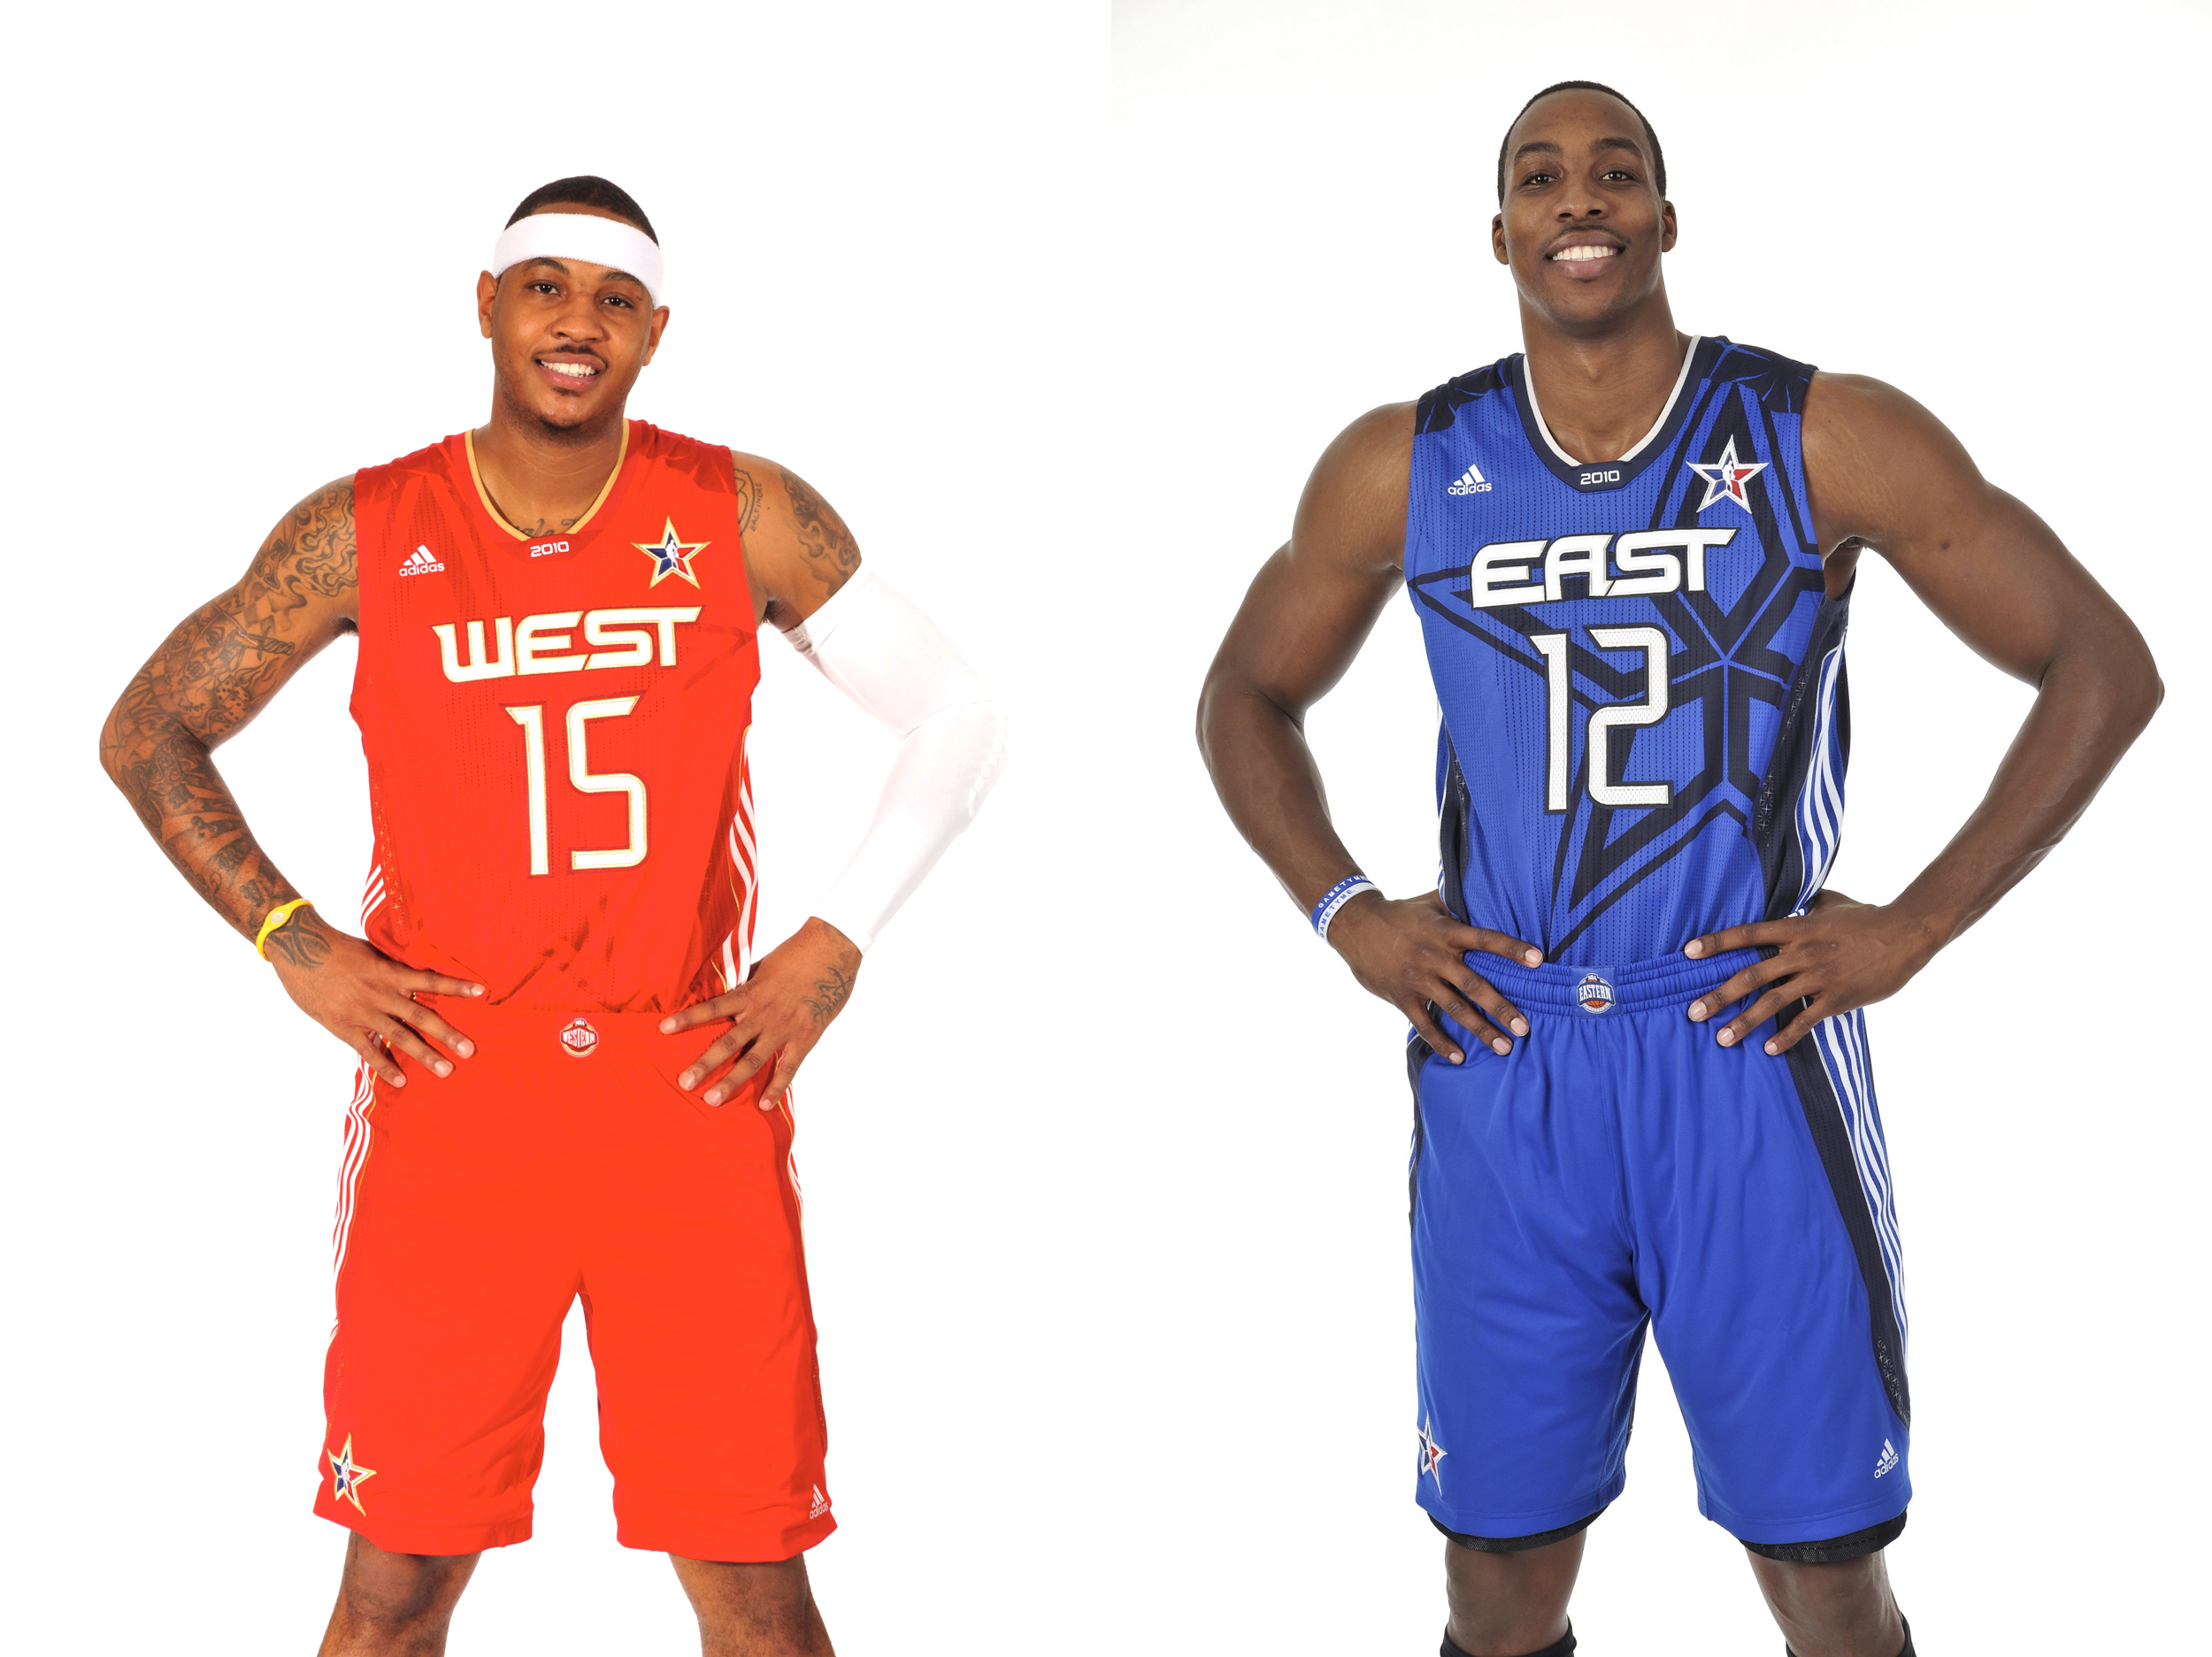 4bcd26f167e Carmelo Anthony  15 of the Denver Nuggets and Dwight Howard  12 of the  Orlando